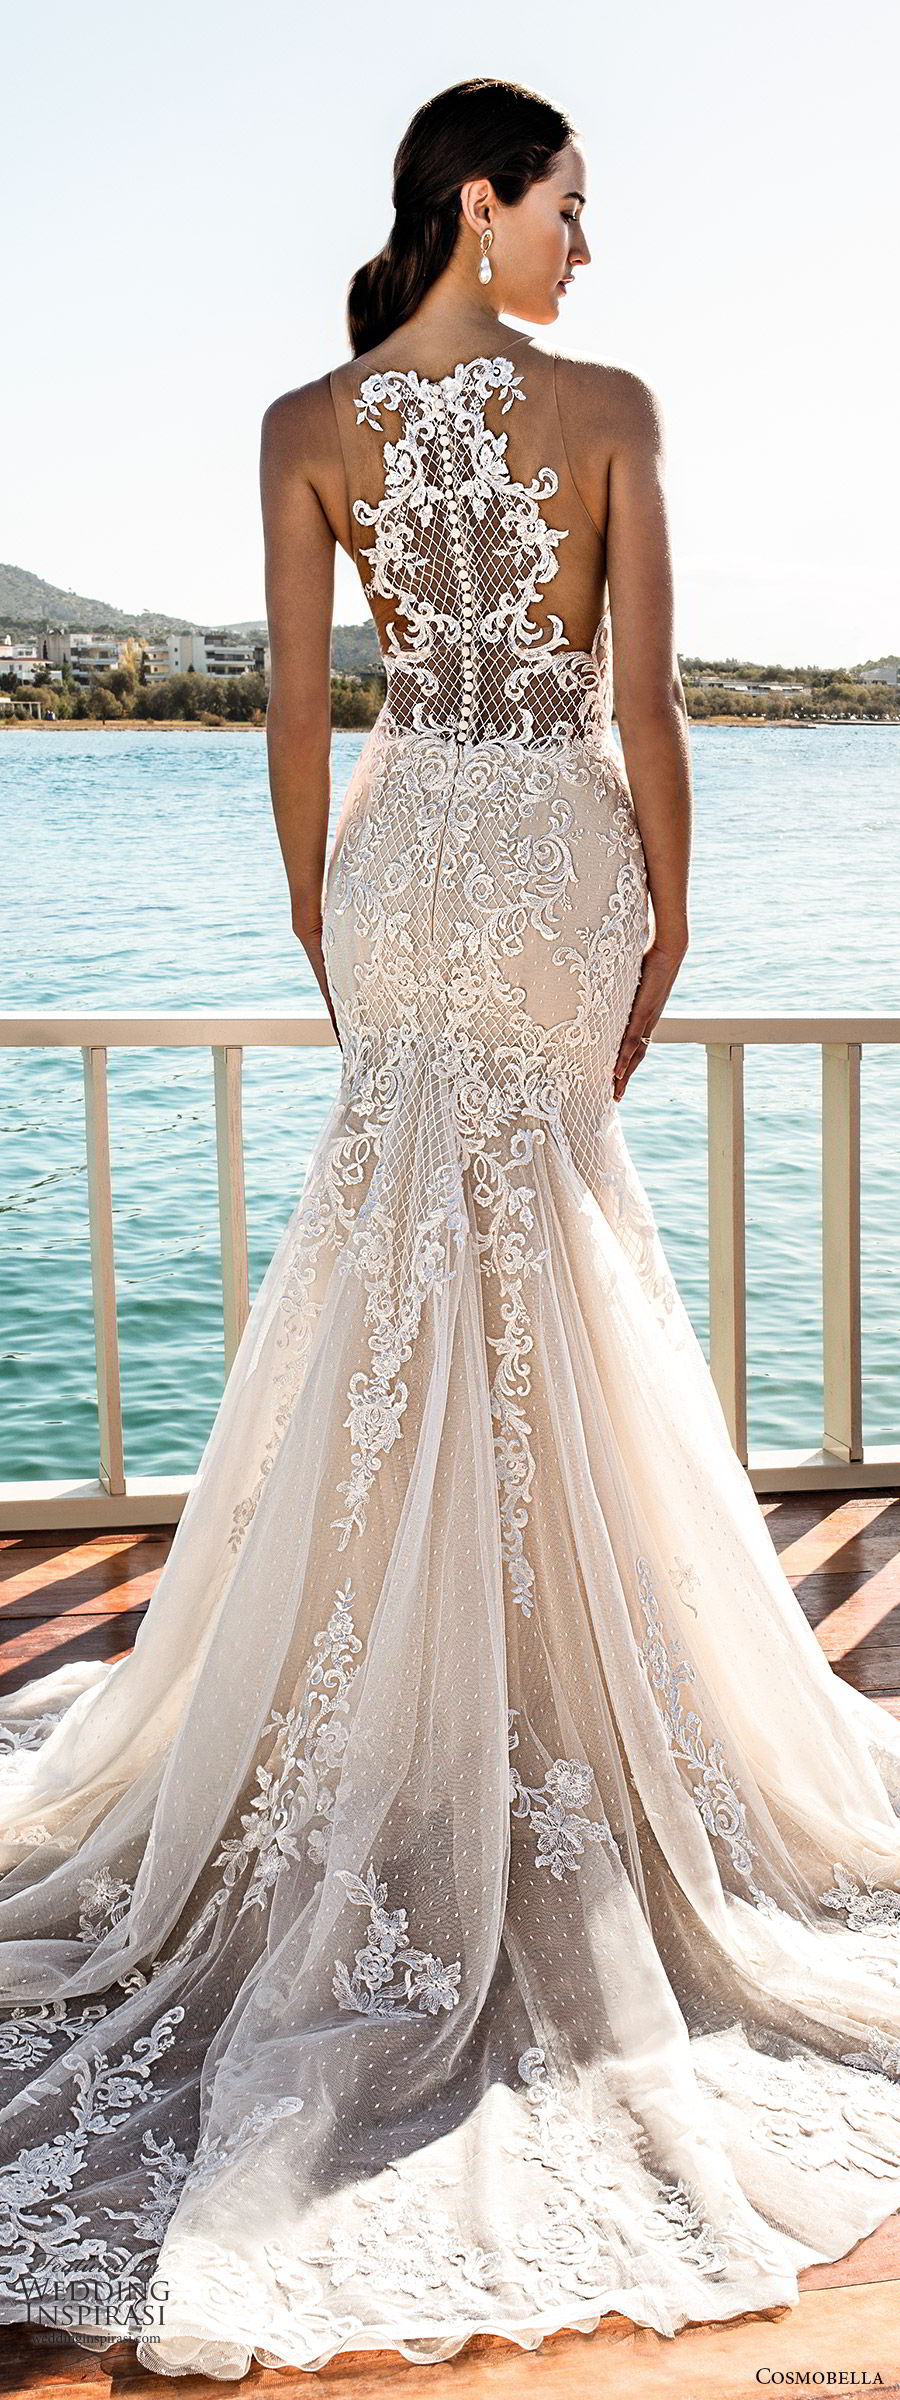 cosmobella 2020 bridal sleeveless illusion straps v neckline fully embellished sheath mermaid lace wedding dress (19) glam glitzy elegant illusion back chapel train bv